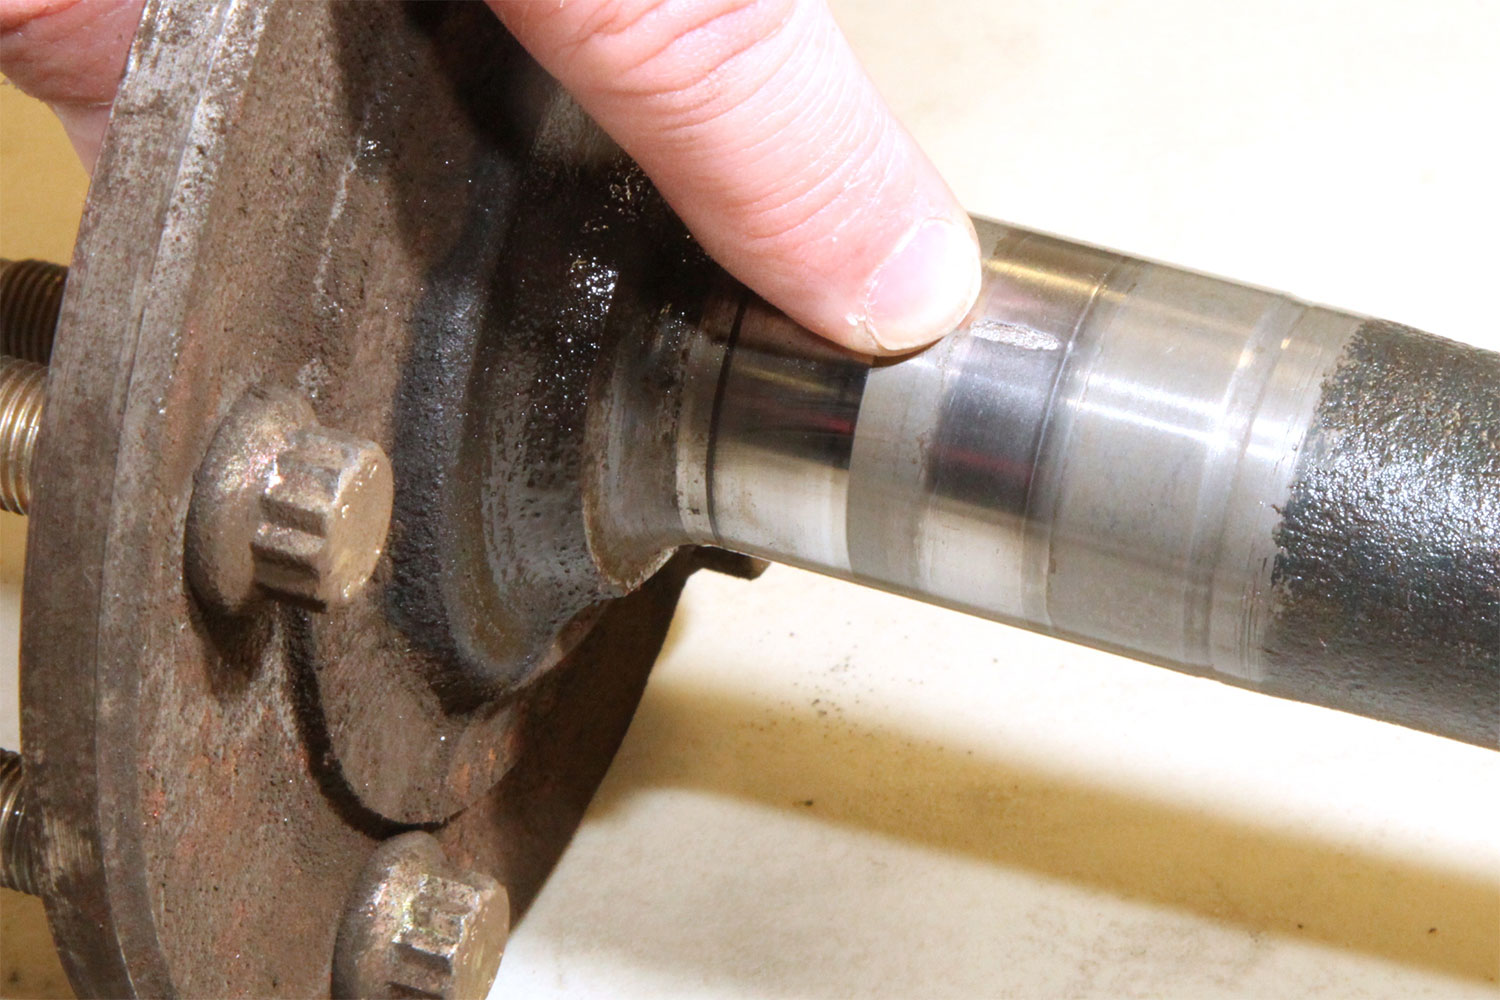 This close-up of the bearing race on our 10-bolt's axle shows a galled spot. If not addressed, the area will spread around the race, taking the temper out of the surface hardening, eventually causing an axle failure. The Timken bearing will move the bearing surface to the smooth area just behind the finger.